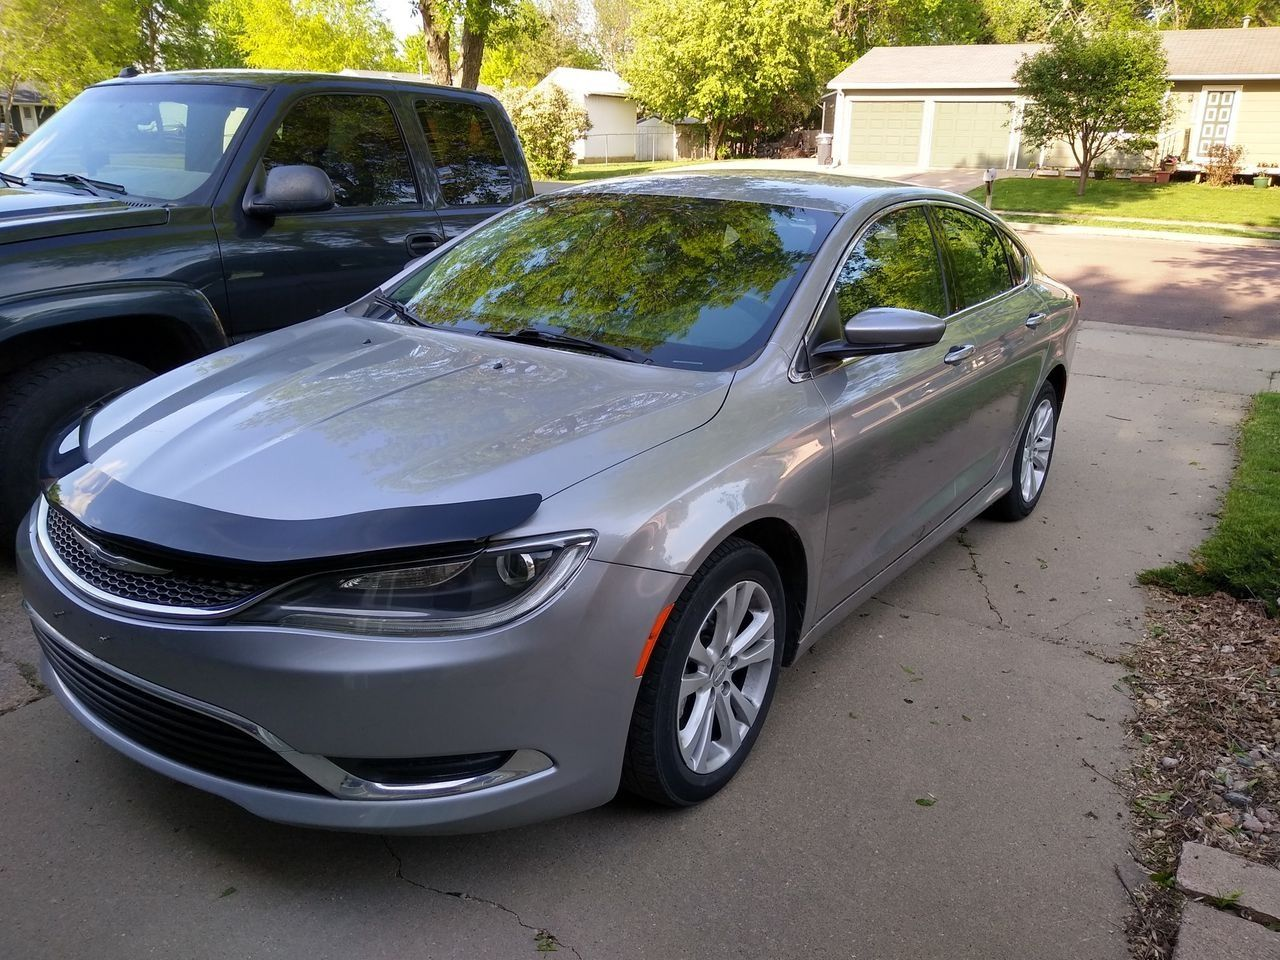 2016 Chrysler 200 Limited | Sioux Falls, SD, Billet Silver Metallic Clear Coat (Silver), Front Wheel